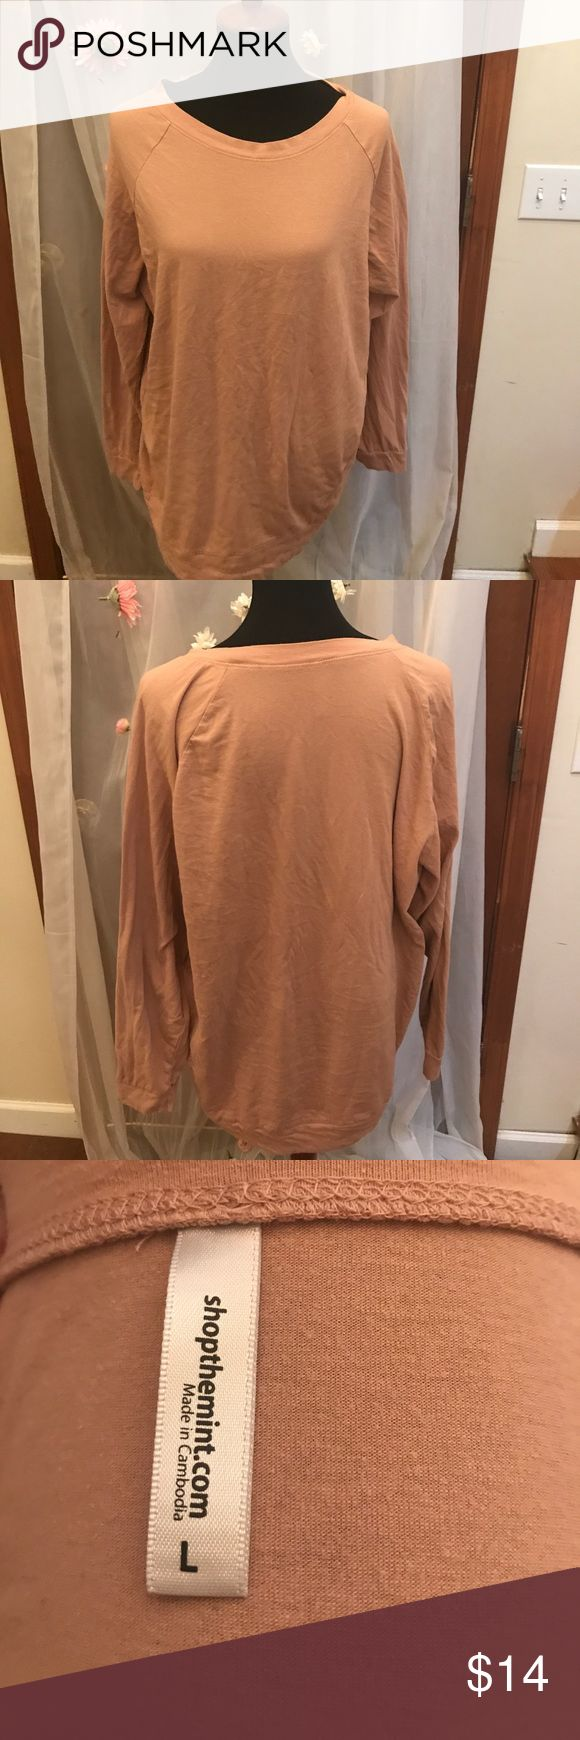 Mint Julep Boutique Slouchy Dolman Tunic Great lightweight long sleeve tunic! Slouchy fit. Great with leggings! Only worn a handful of times, good condition. shopthemint.com Tops Tunics